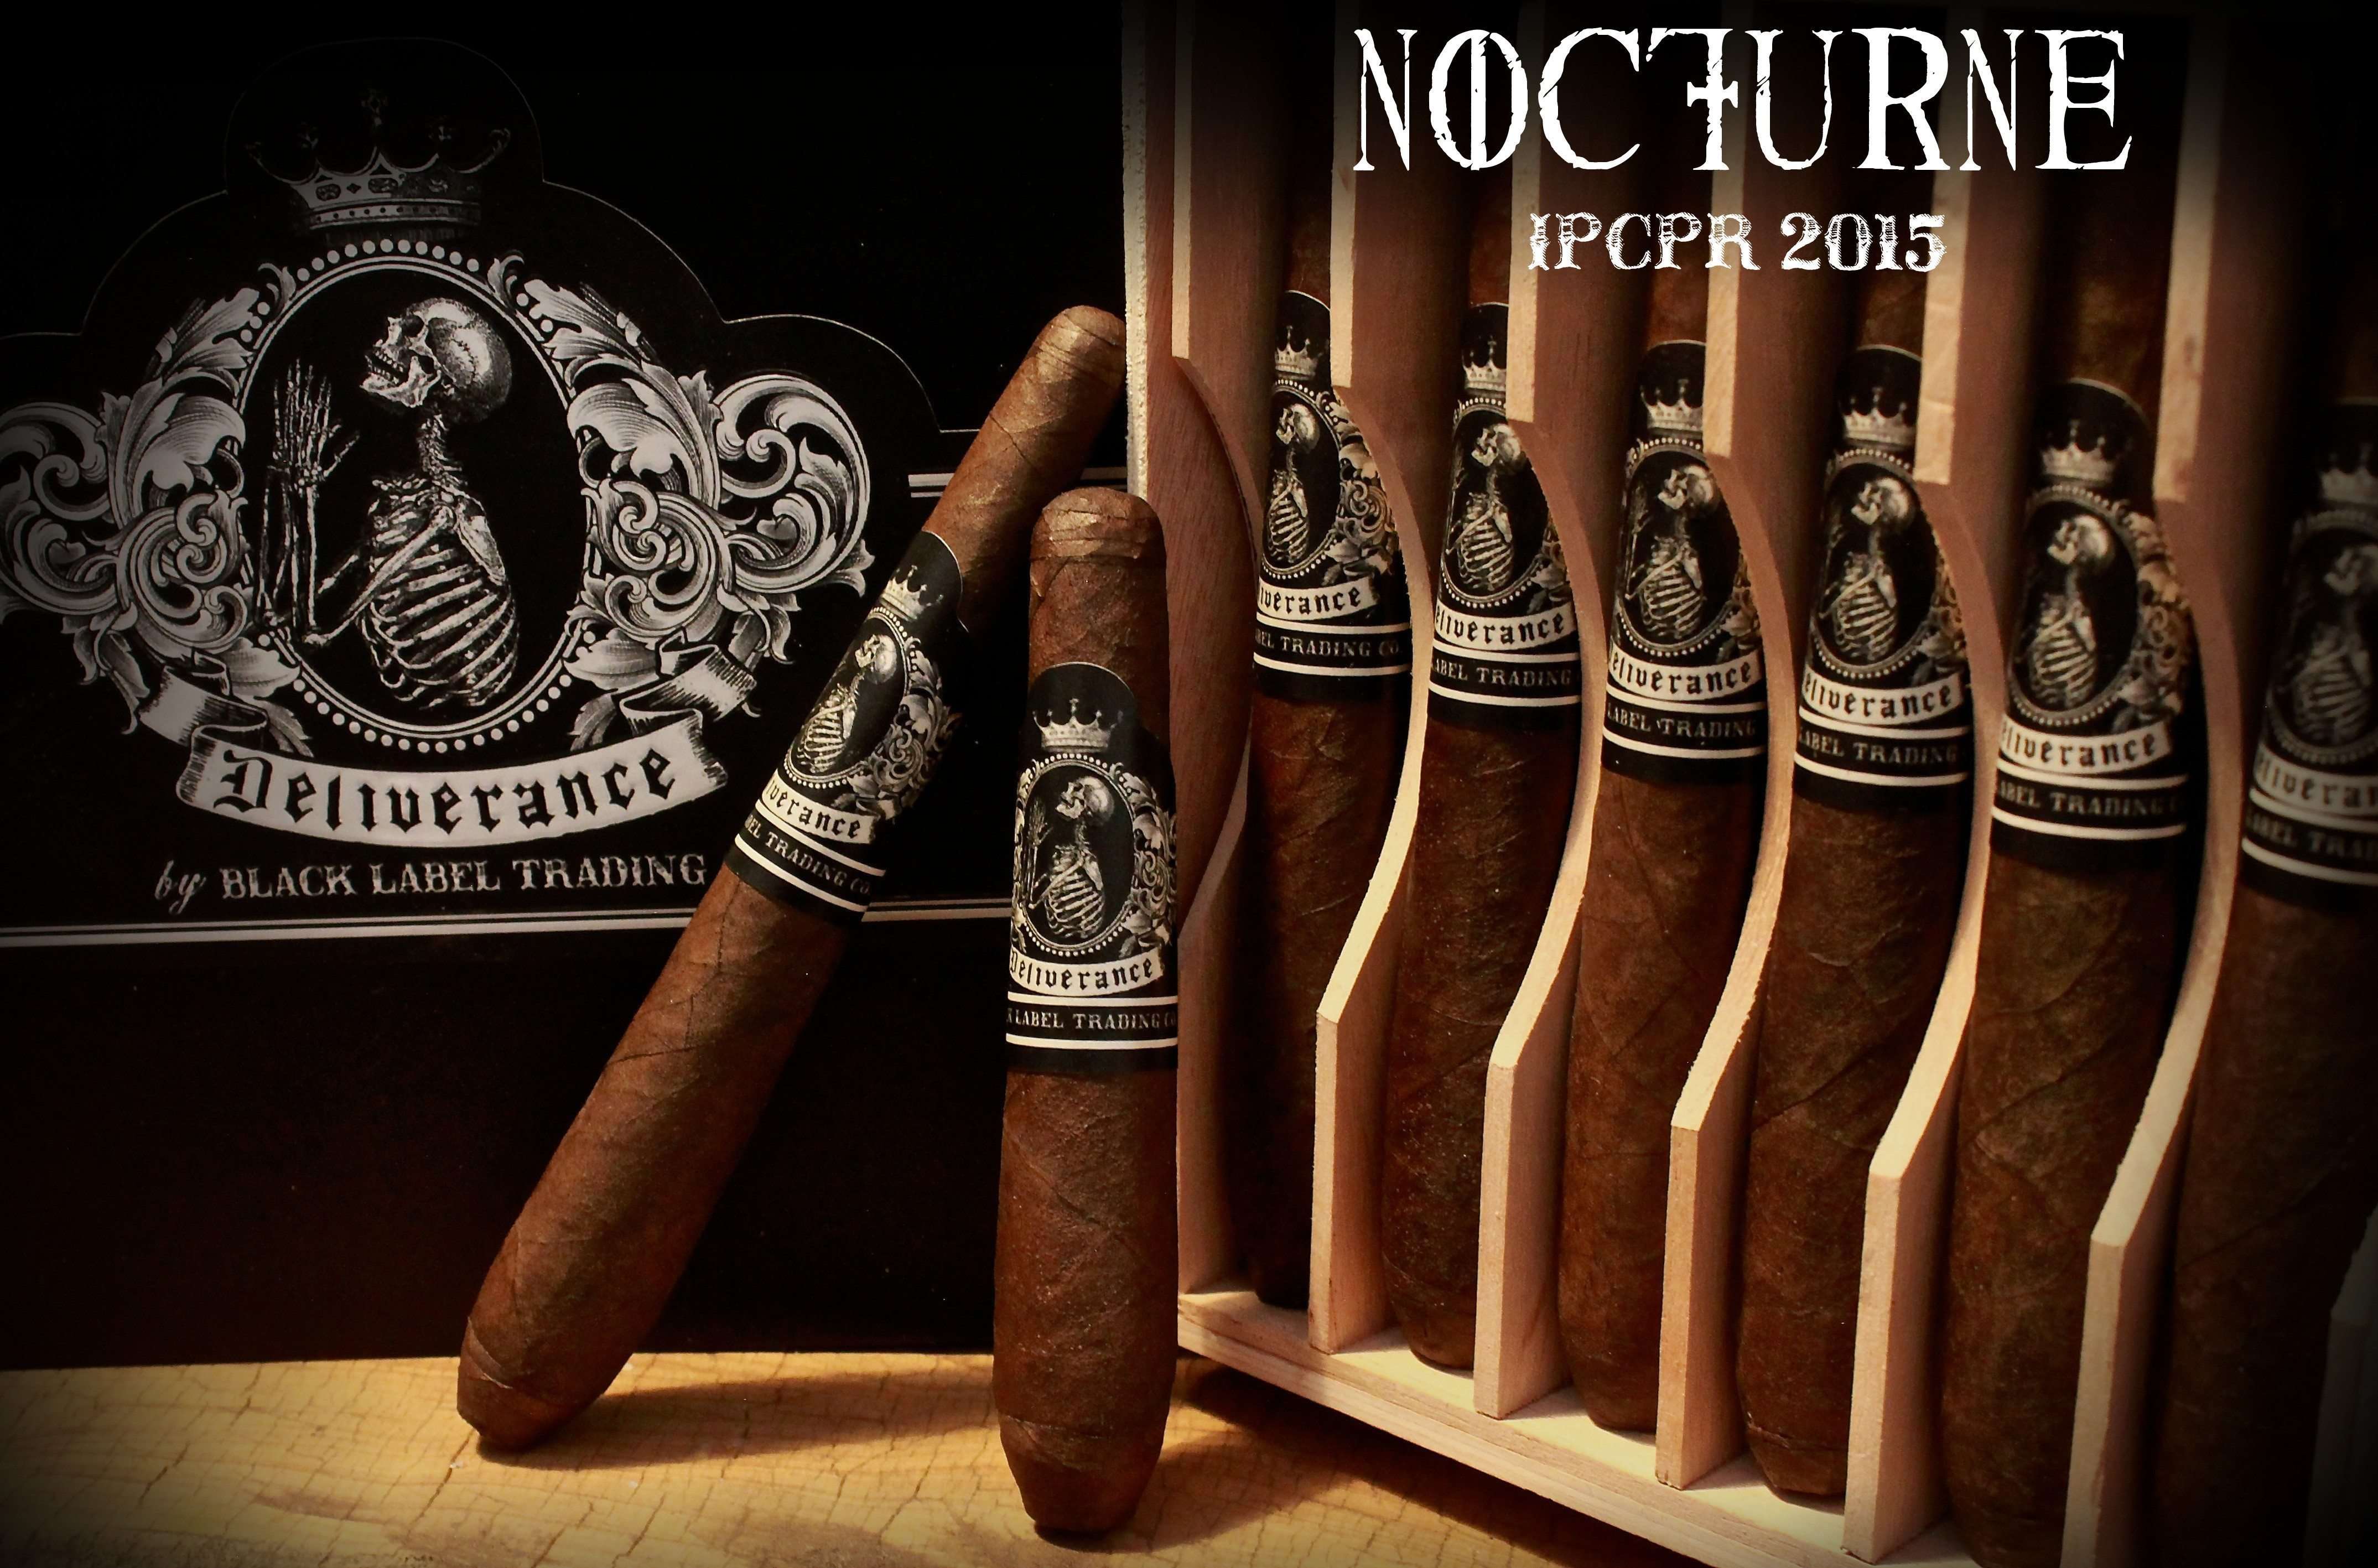 Cigar News: Black Label Trading Company Announces Deliverance Nocturne